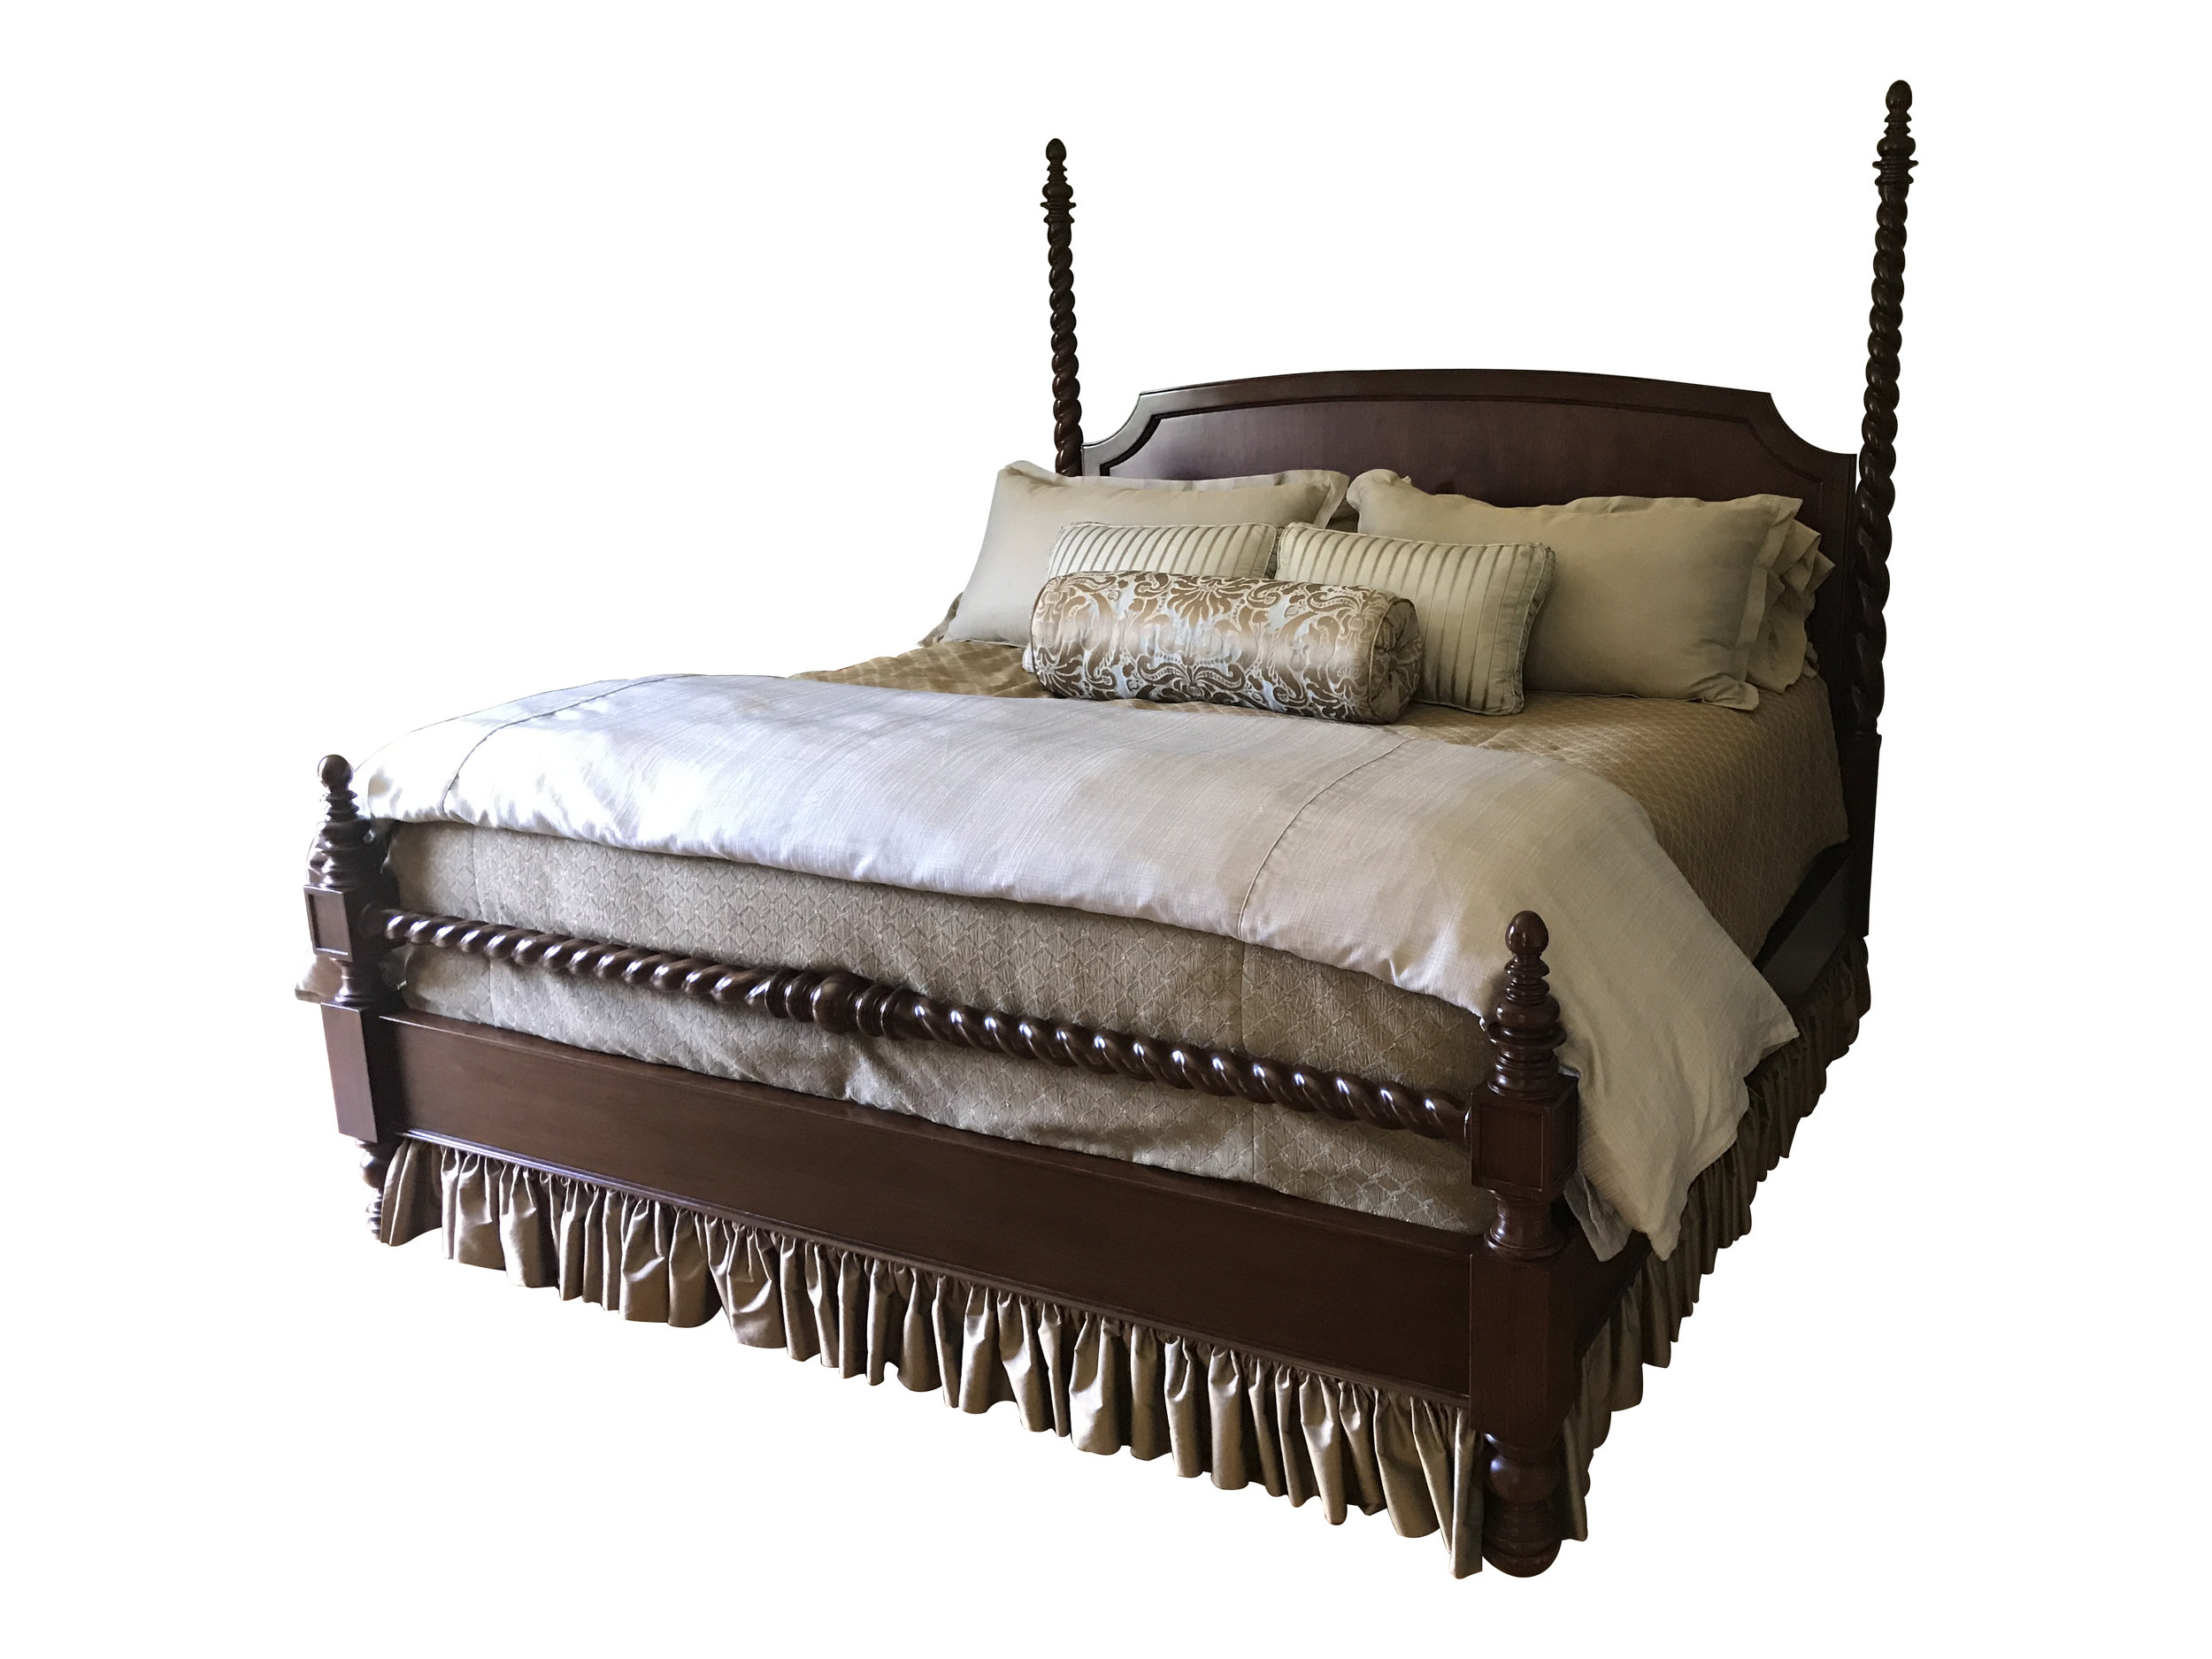 barley twist bed 2.jpg